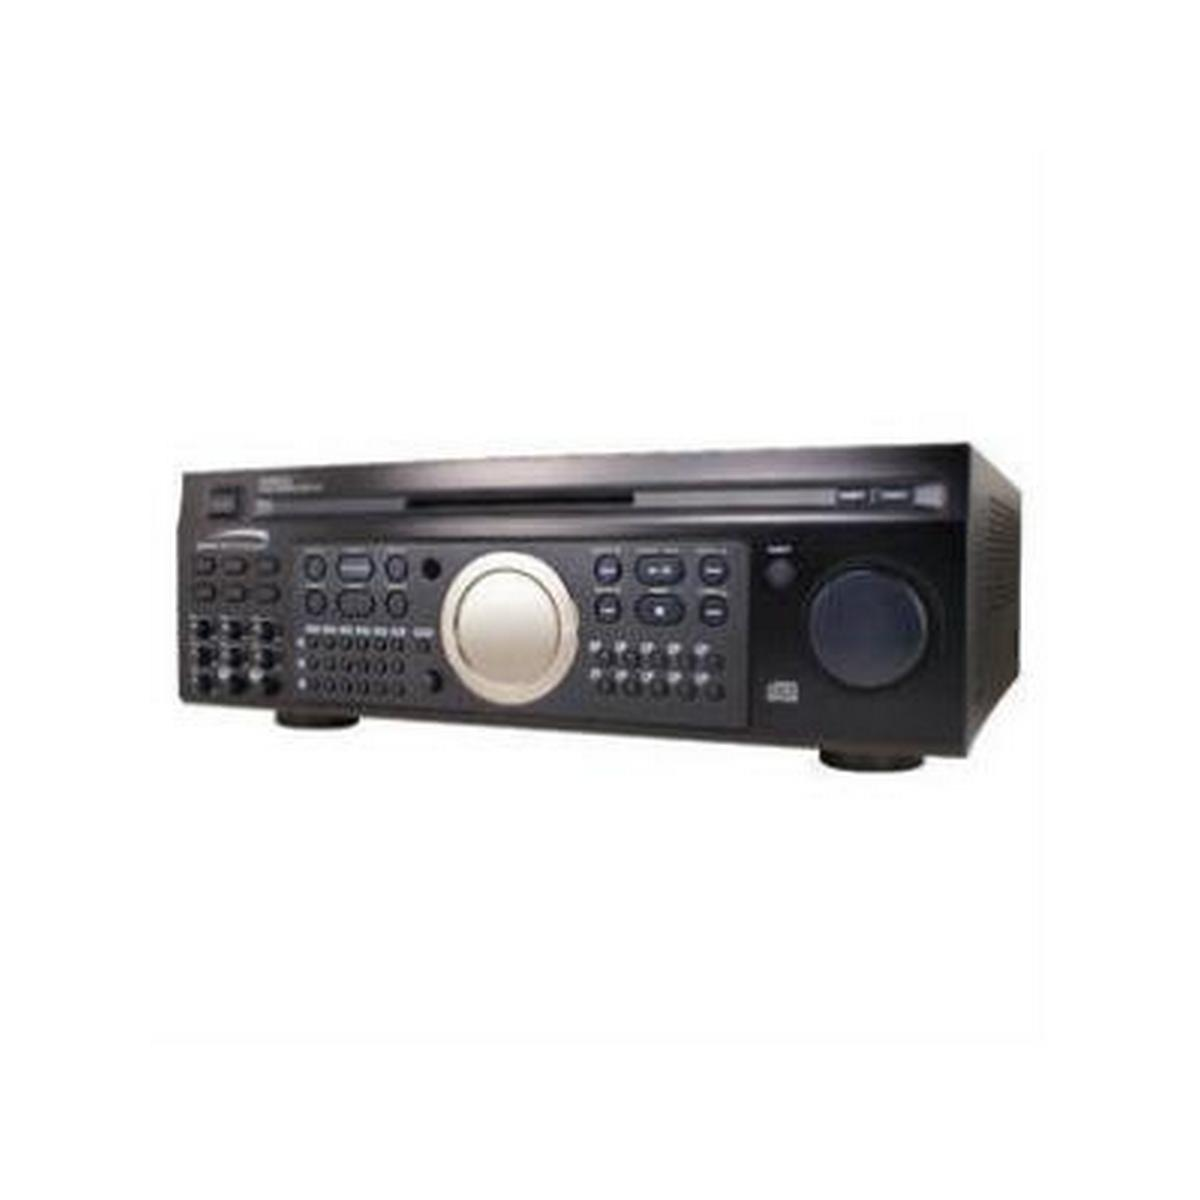 Speco P240FACD 240W PA Amplifier with FM Tuner & CD Player